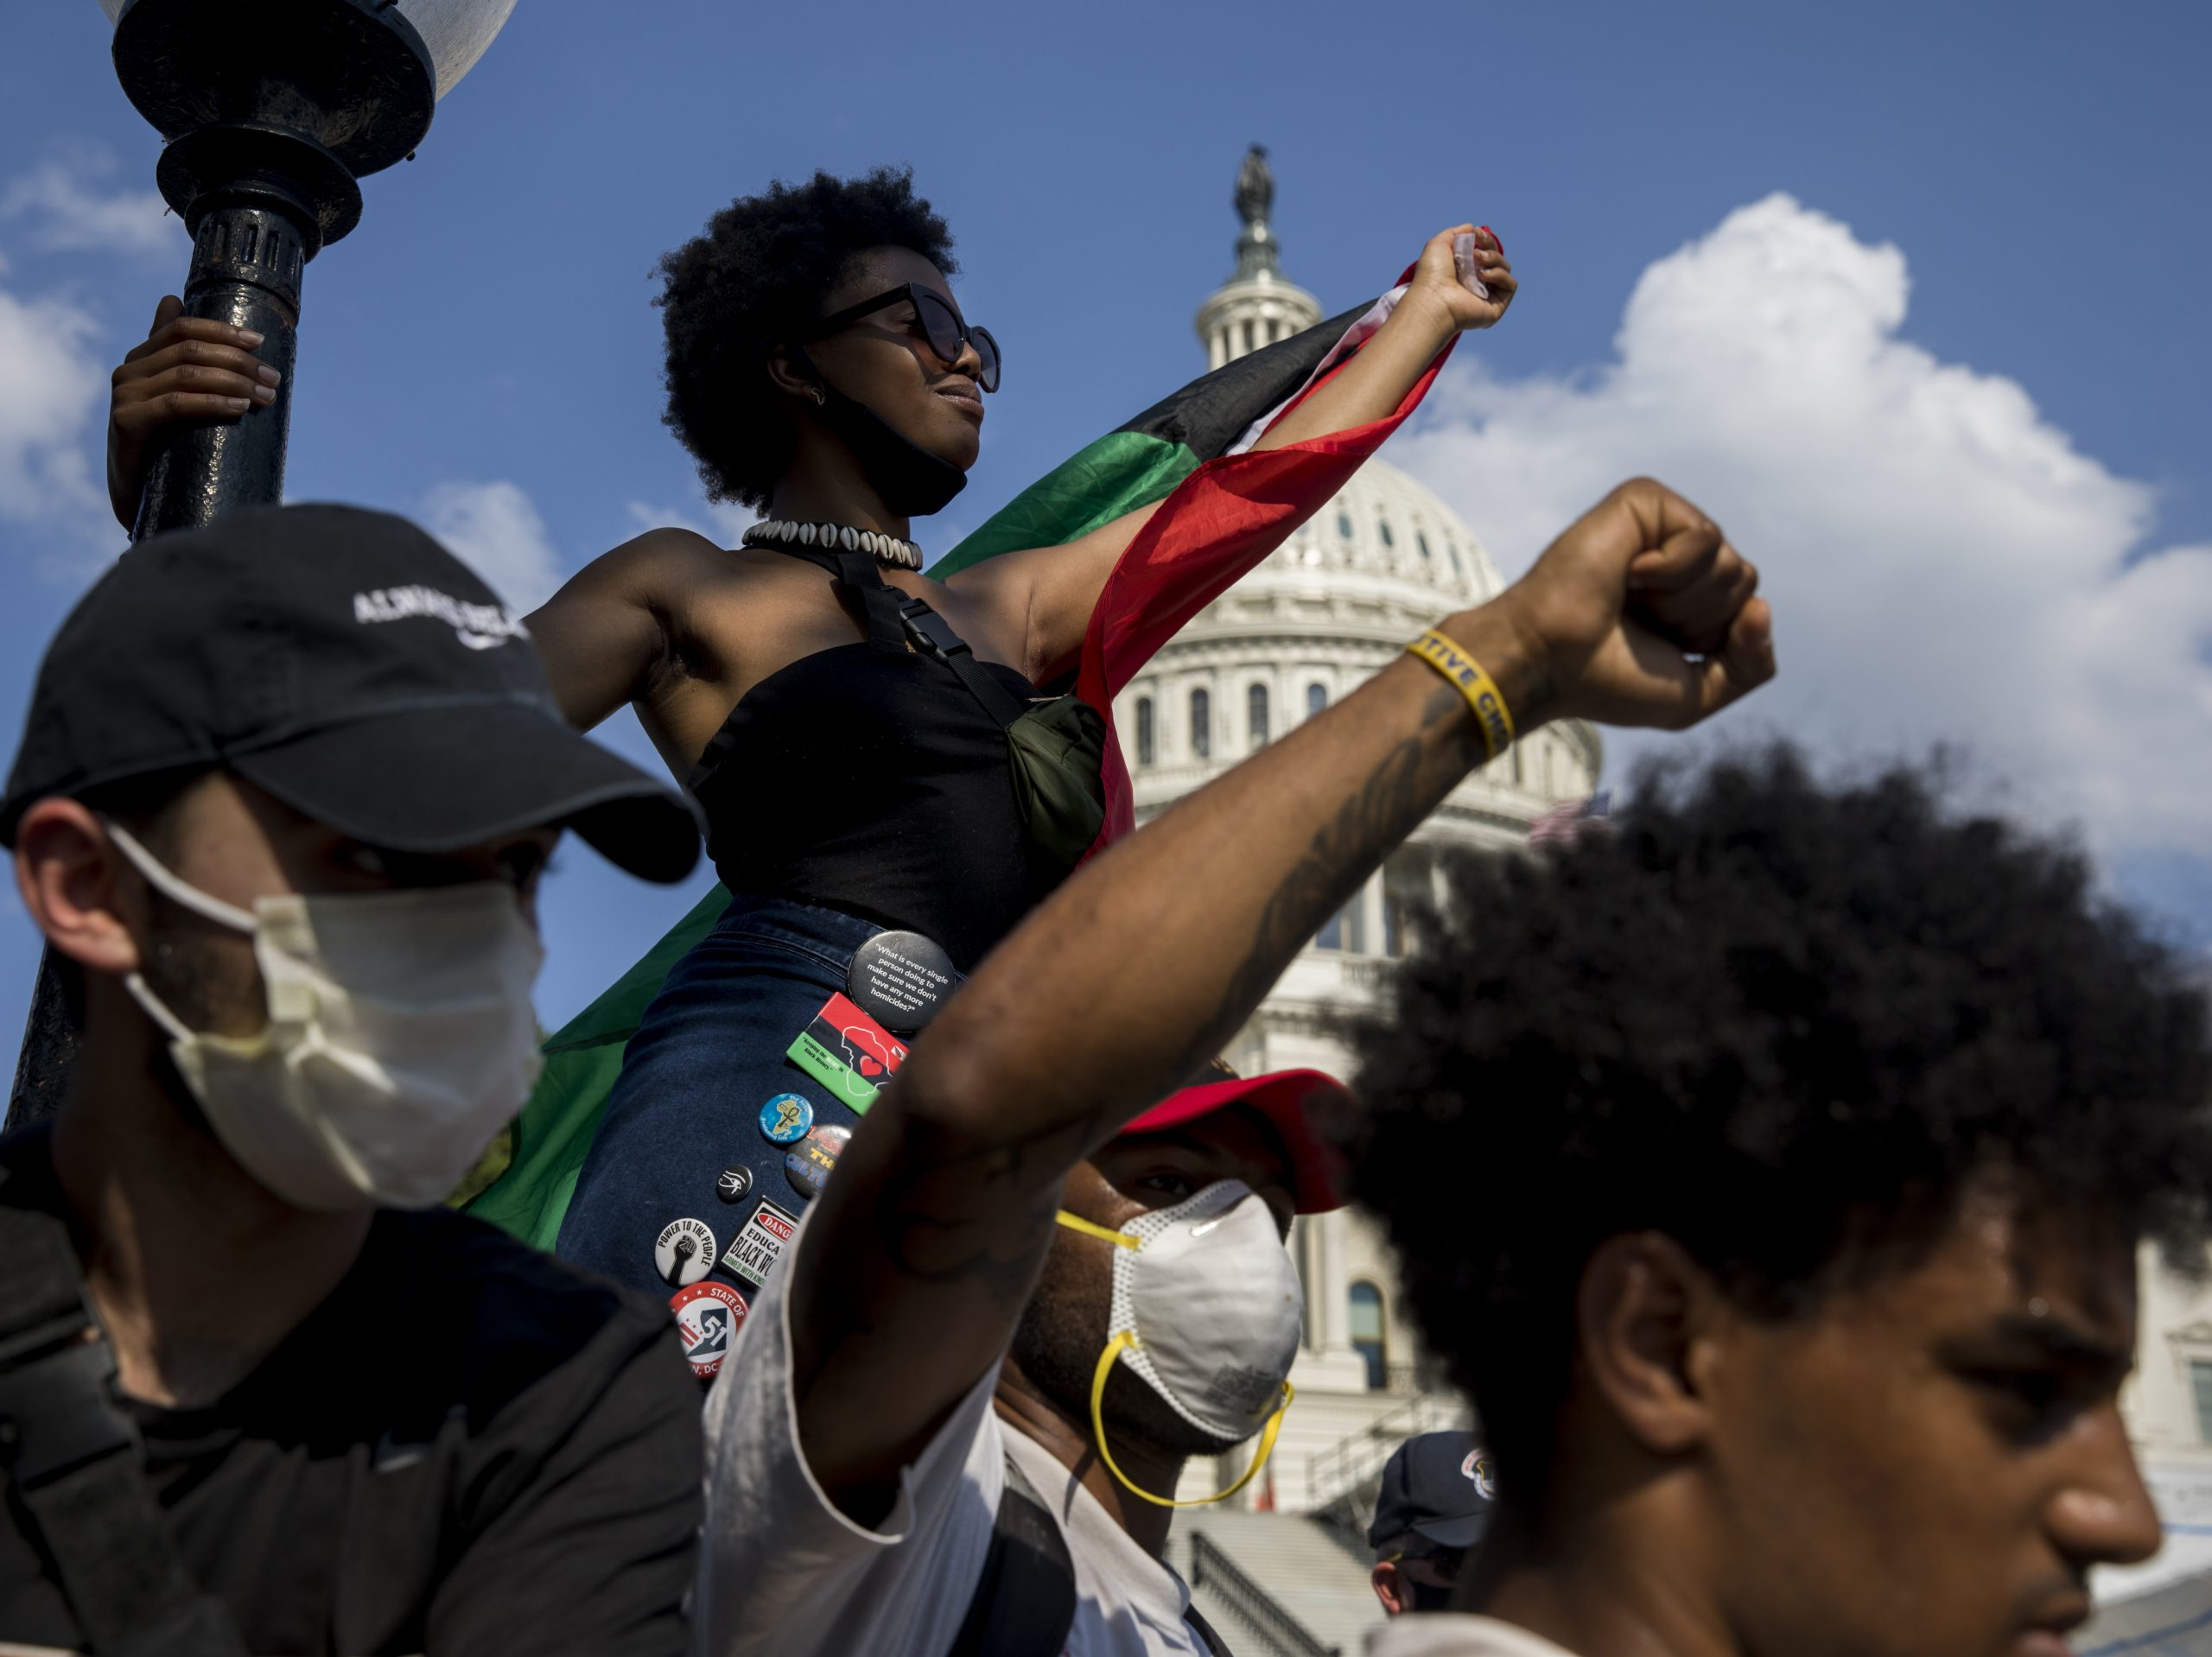 Demonstrators peacefully protest at the U.S. Capitol in Washington, D.C., on Thursday.